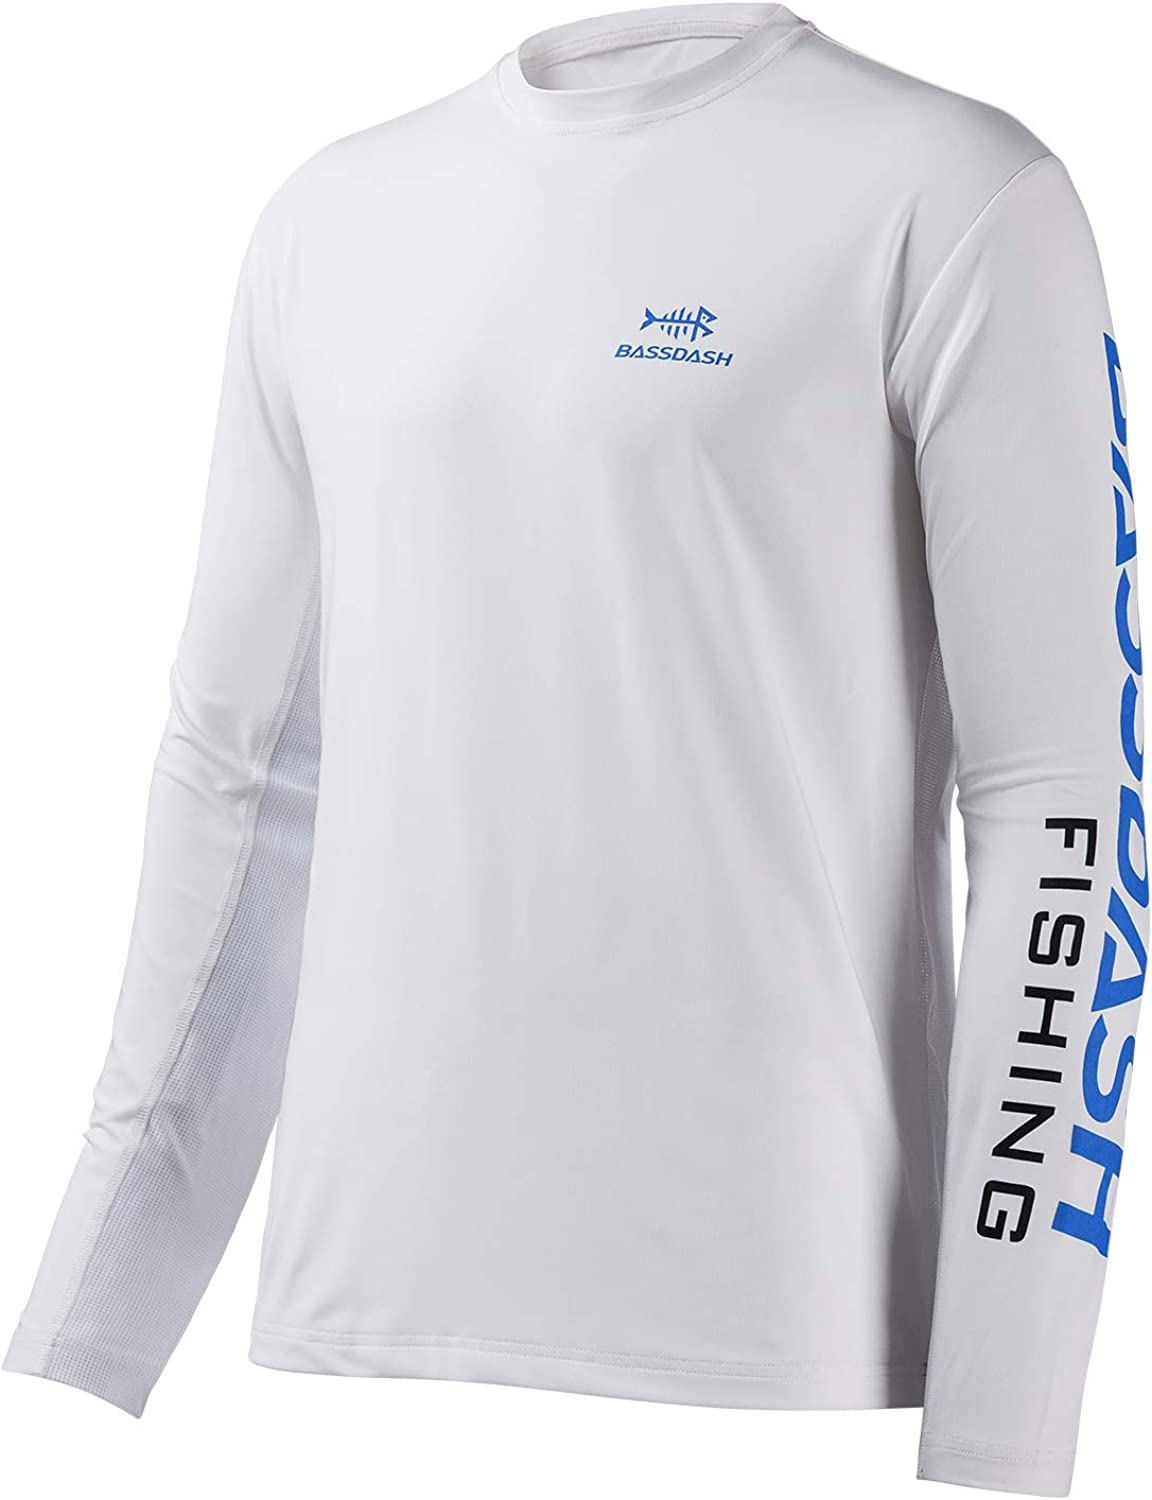 Bassdash Fishing T Shirts for Men UV Sun Protection UPF 50+ Long Sleeve Tee T-Shirt